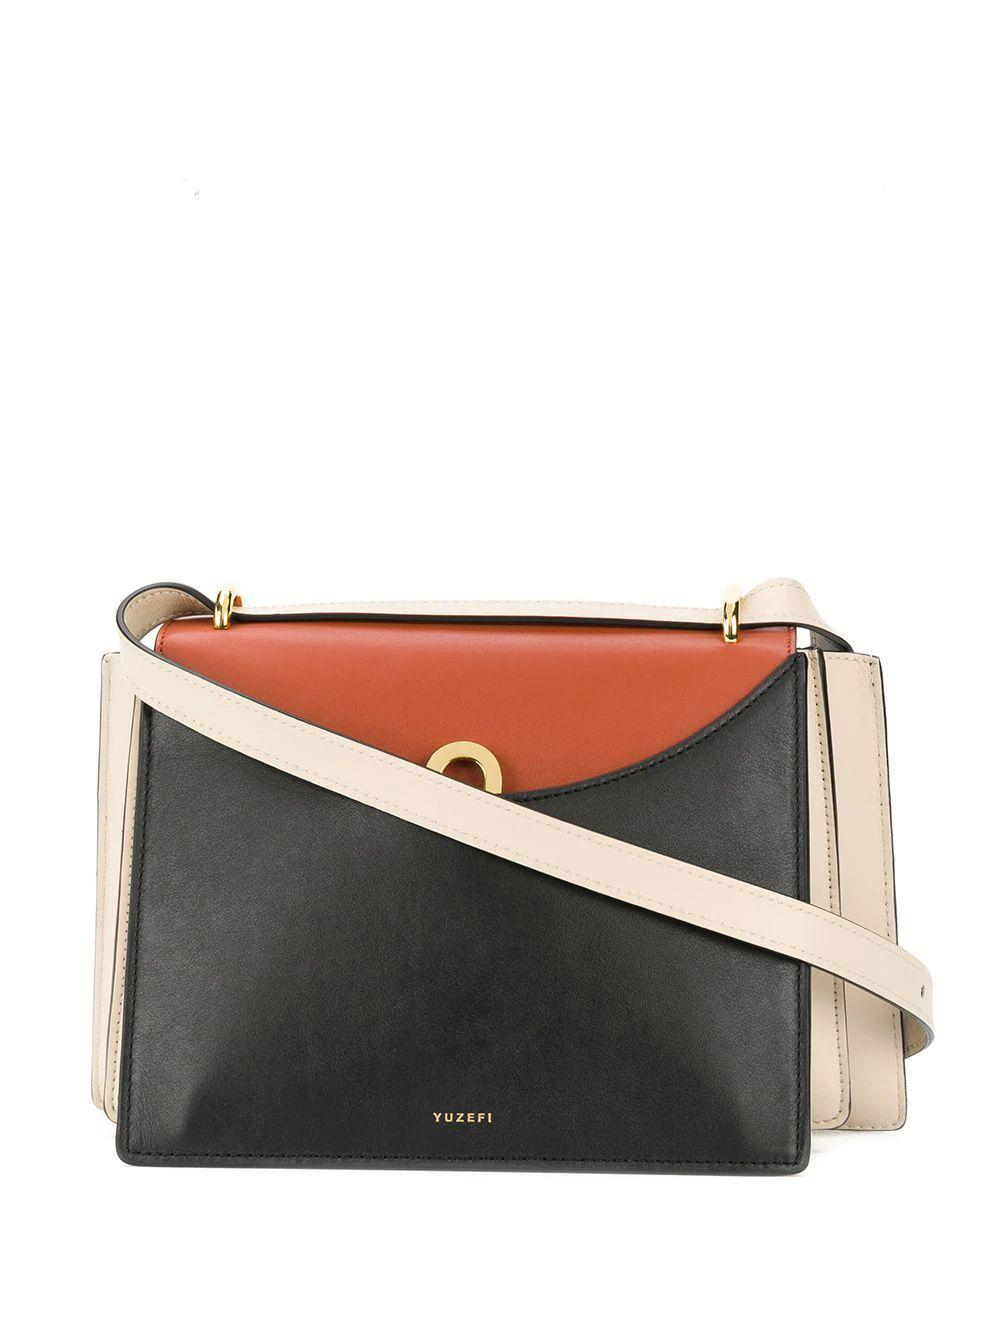 Eloise Shoulder Bag